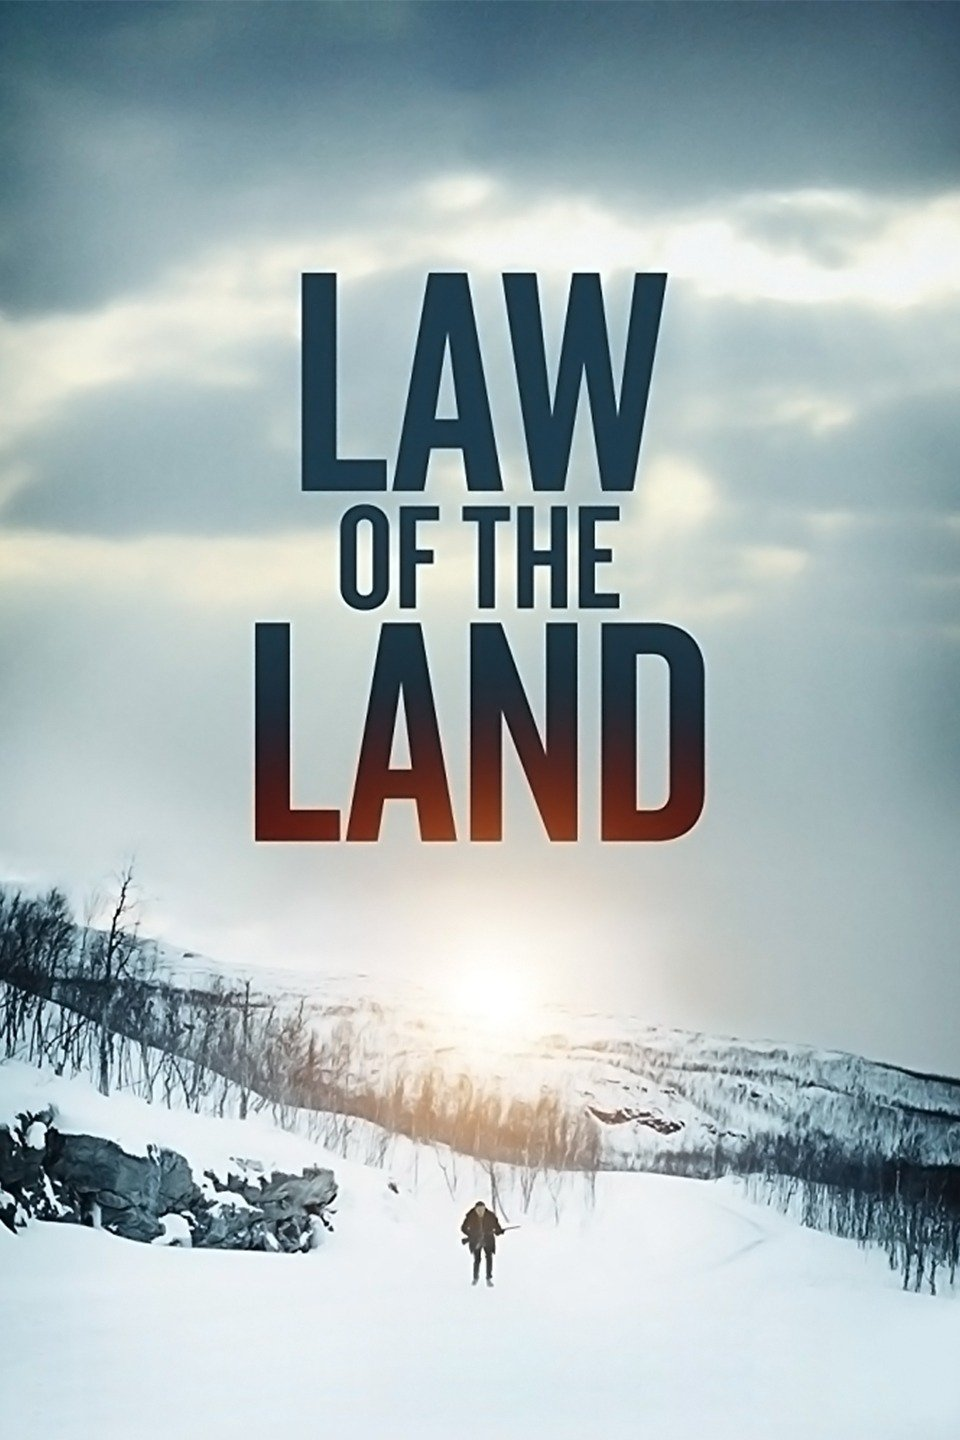 Law of the Land-Armoton maa